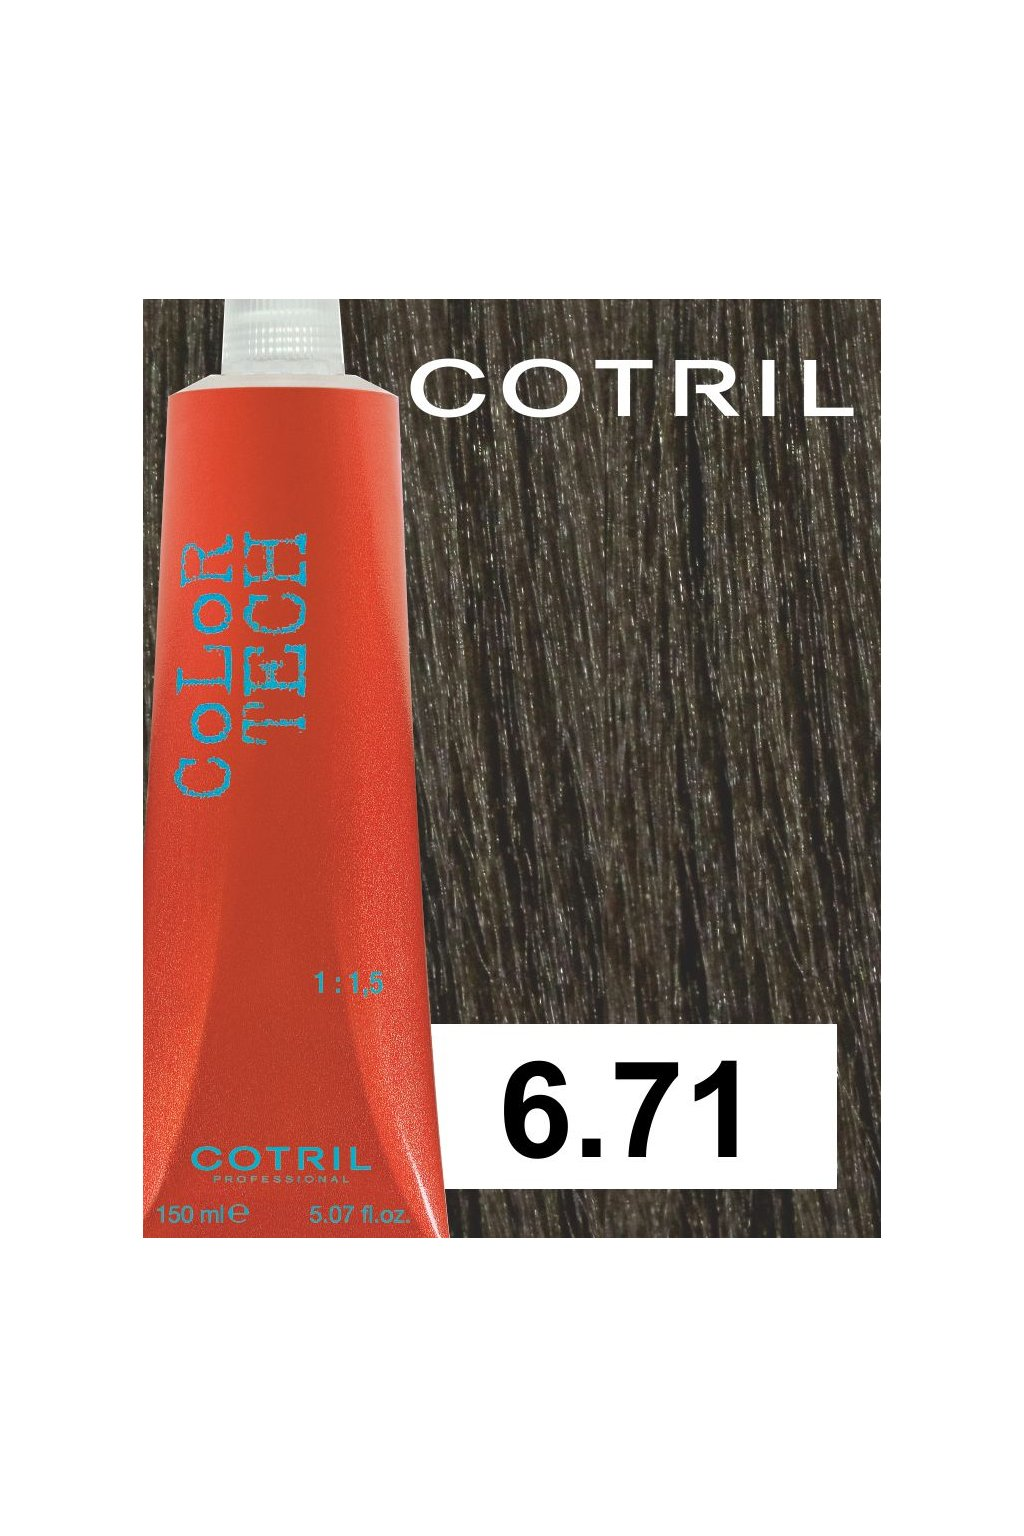 6 71 ct cotril